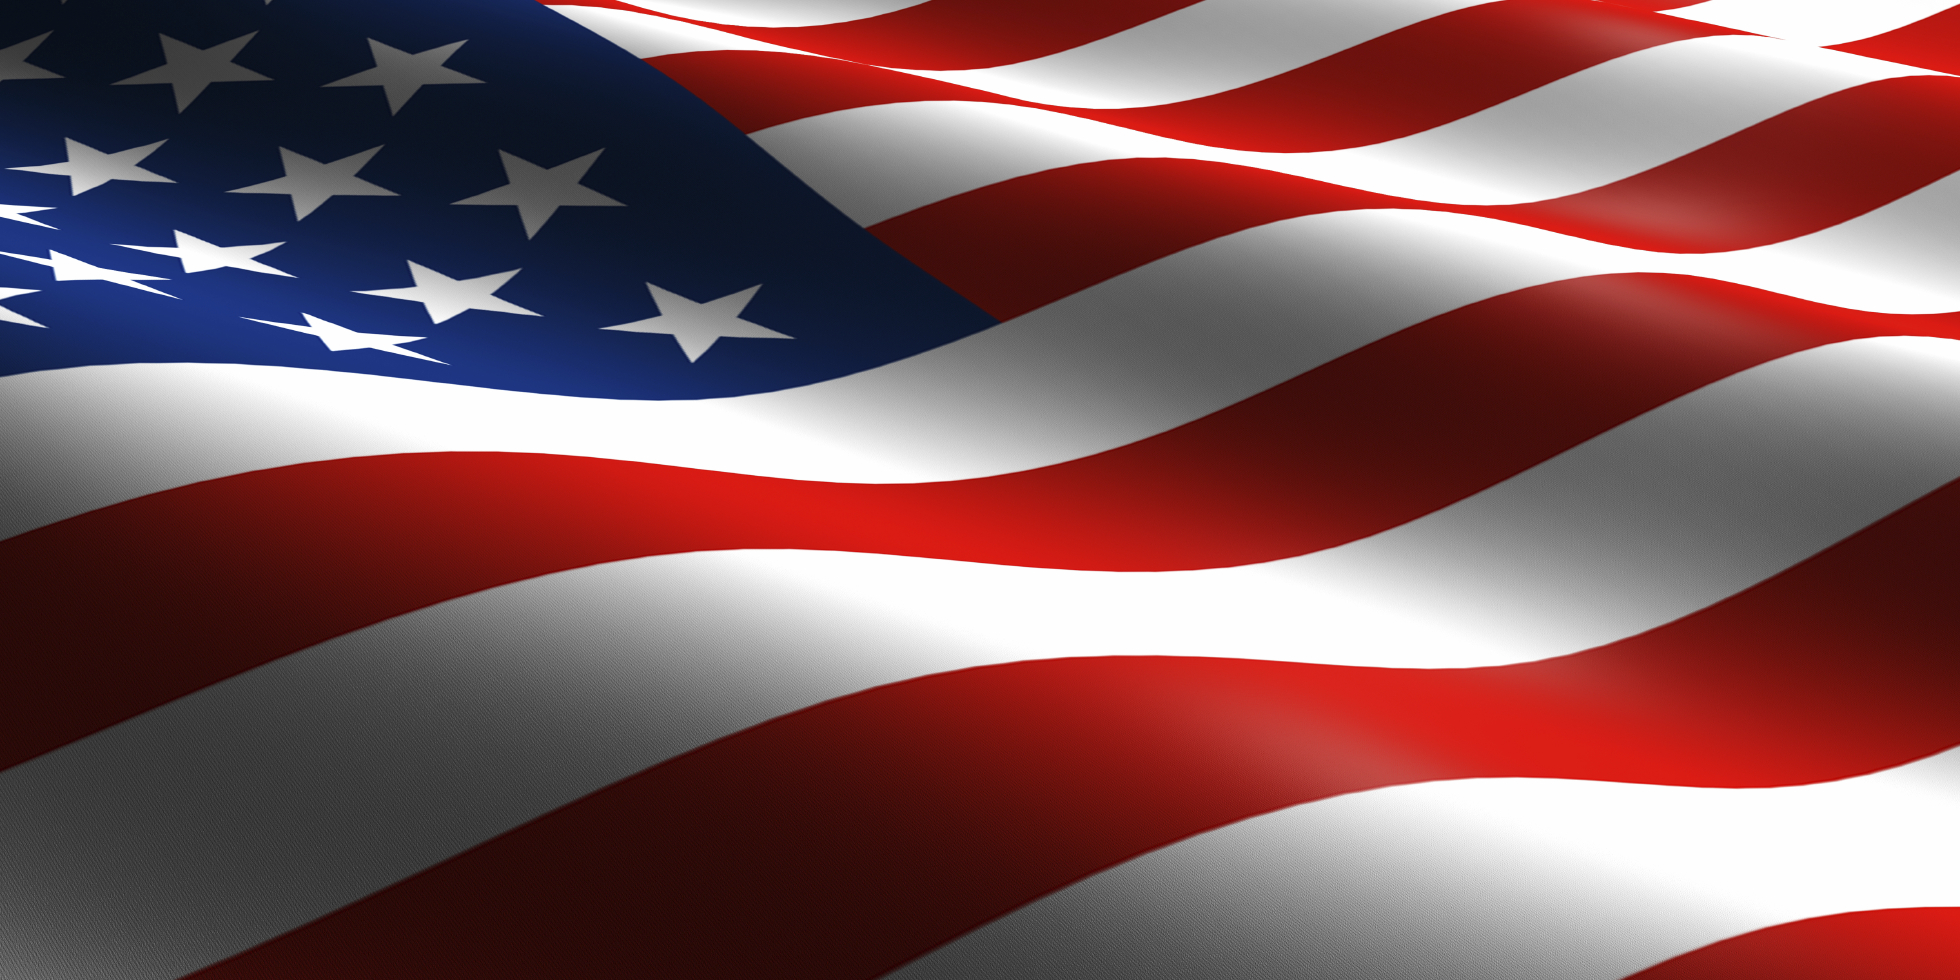 USA Flag Wallpaper 1960x980